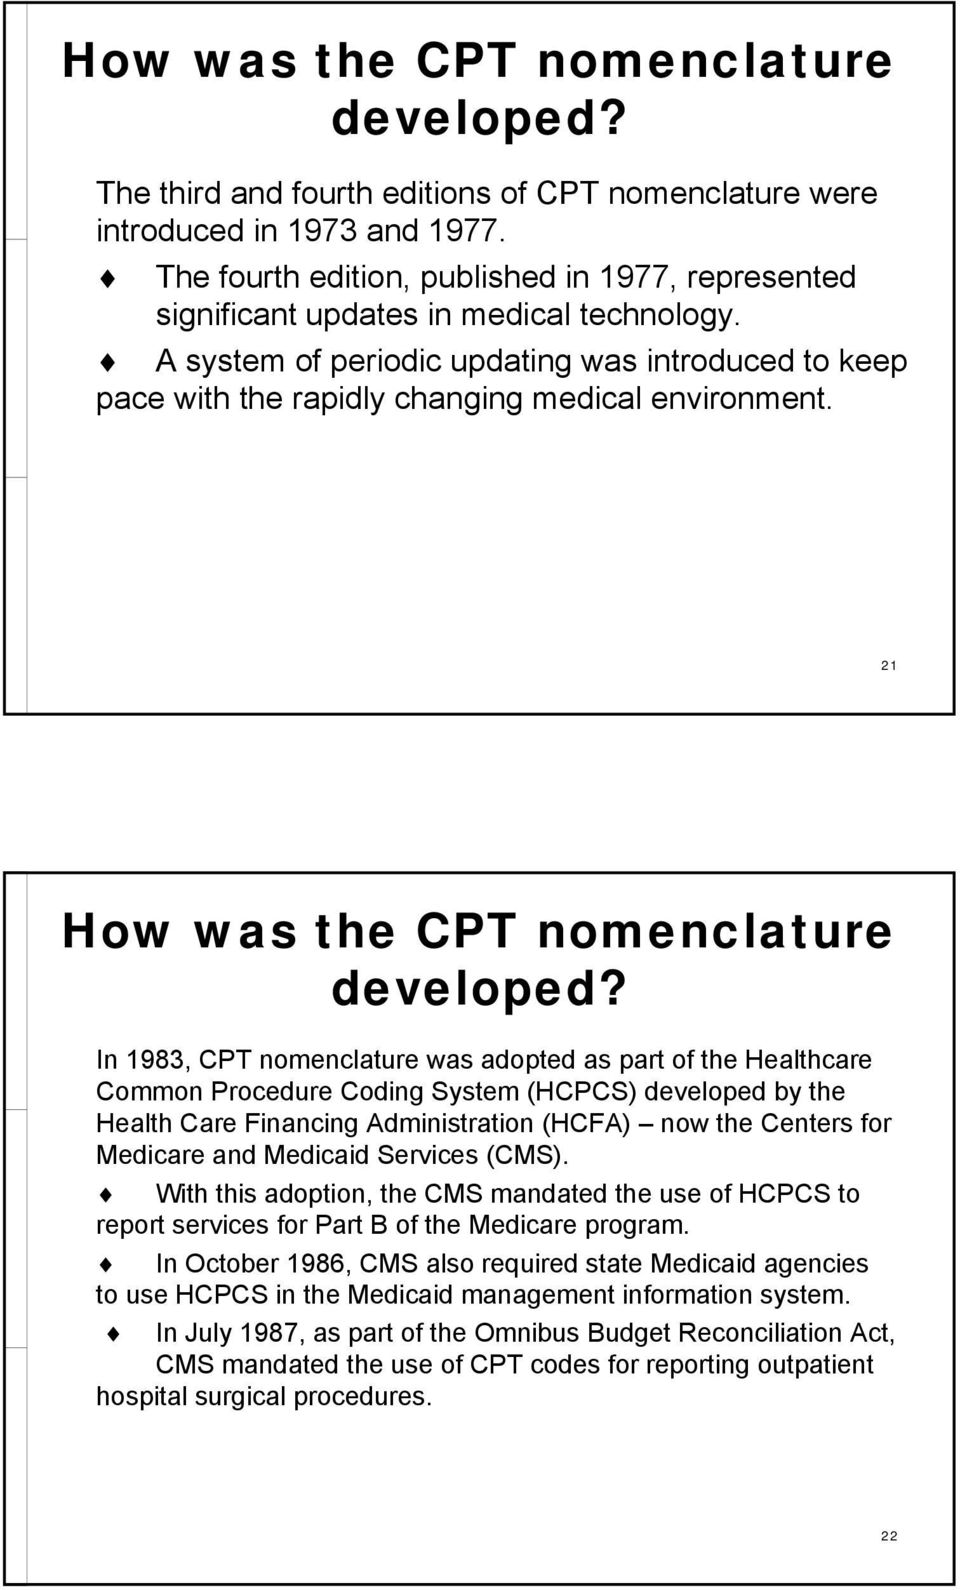 21 How was the CPT nomenclature developed?